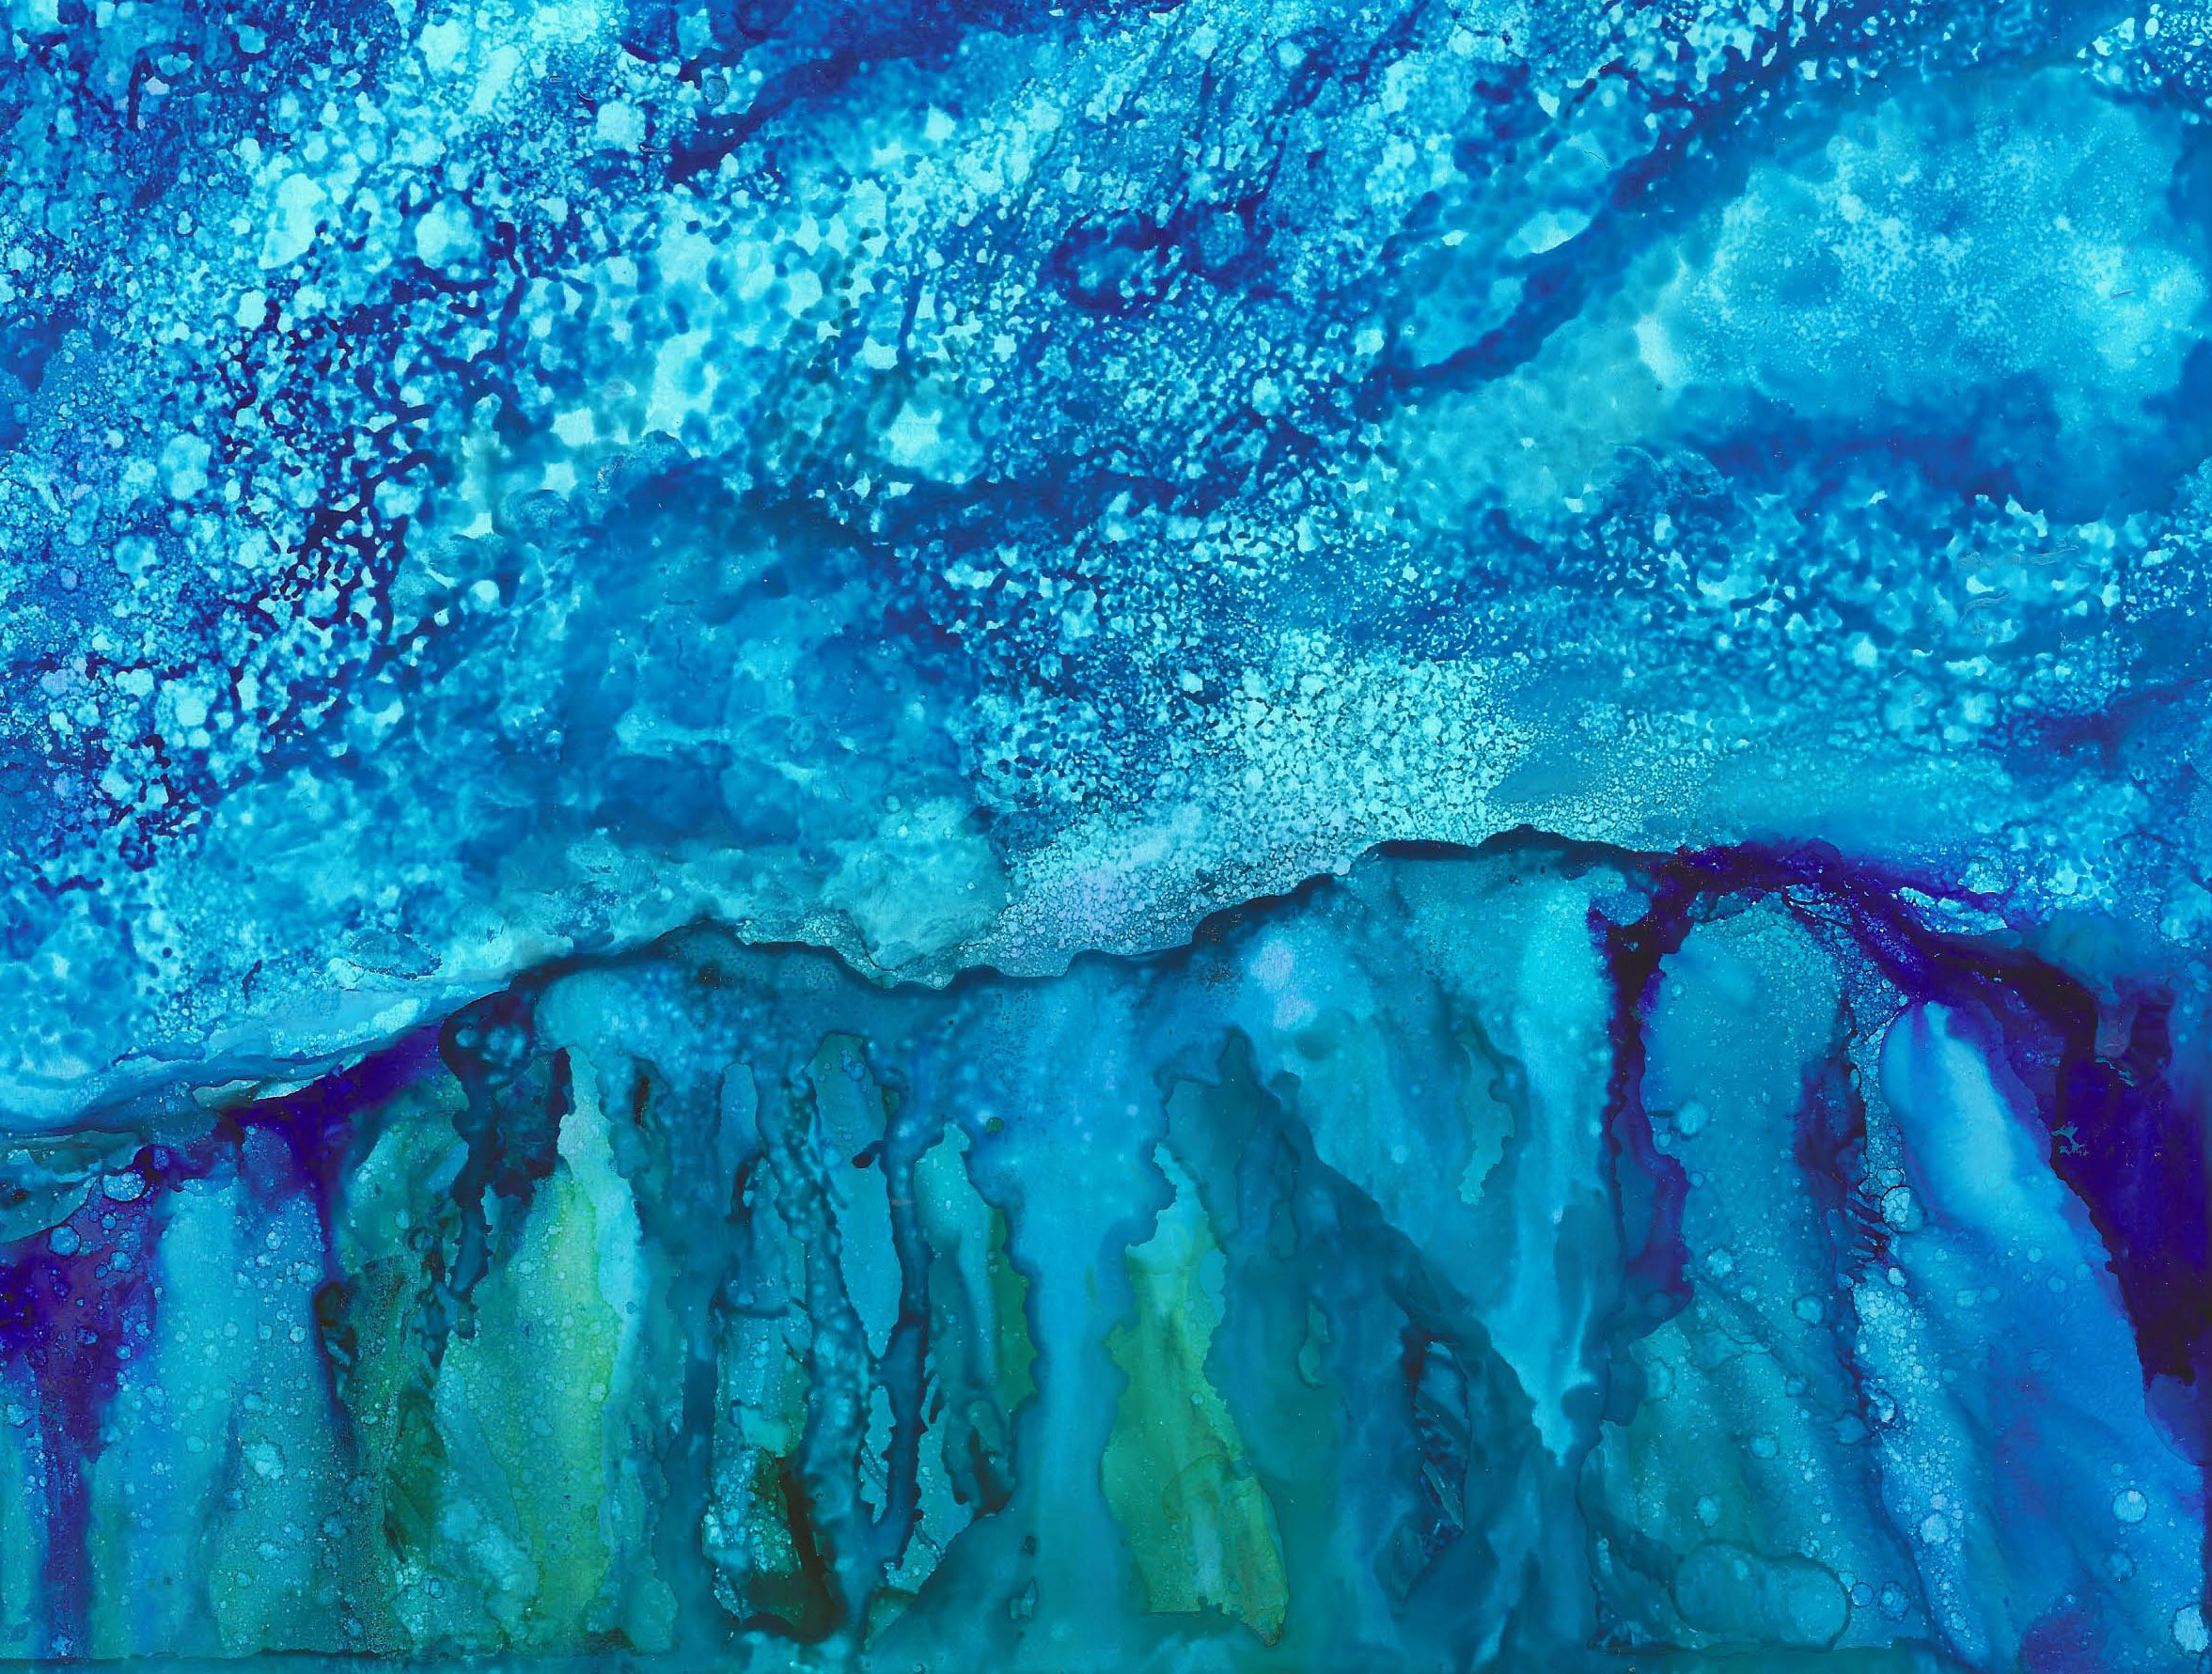 Starlight Mountains - Alcohol Ink - 9 X 12 $130 - Sold - Print Available